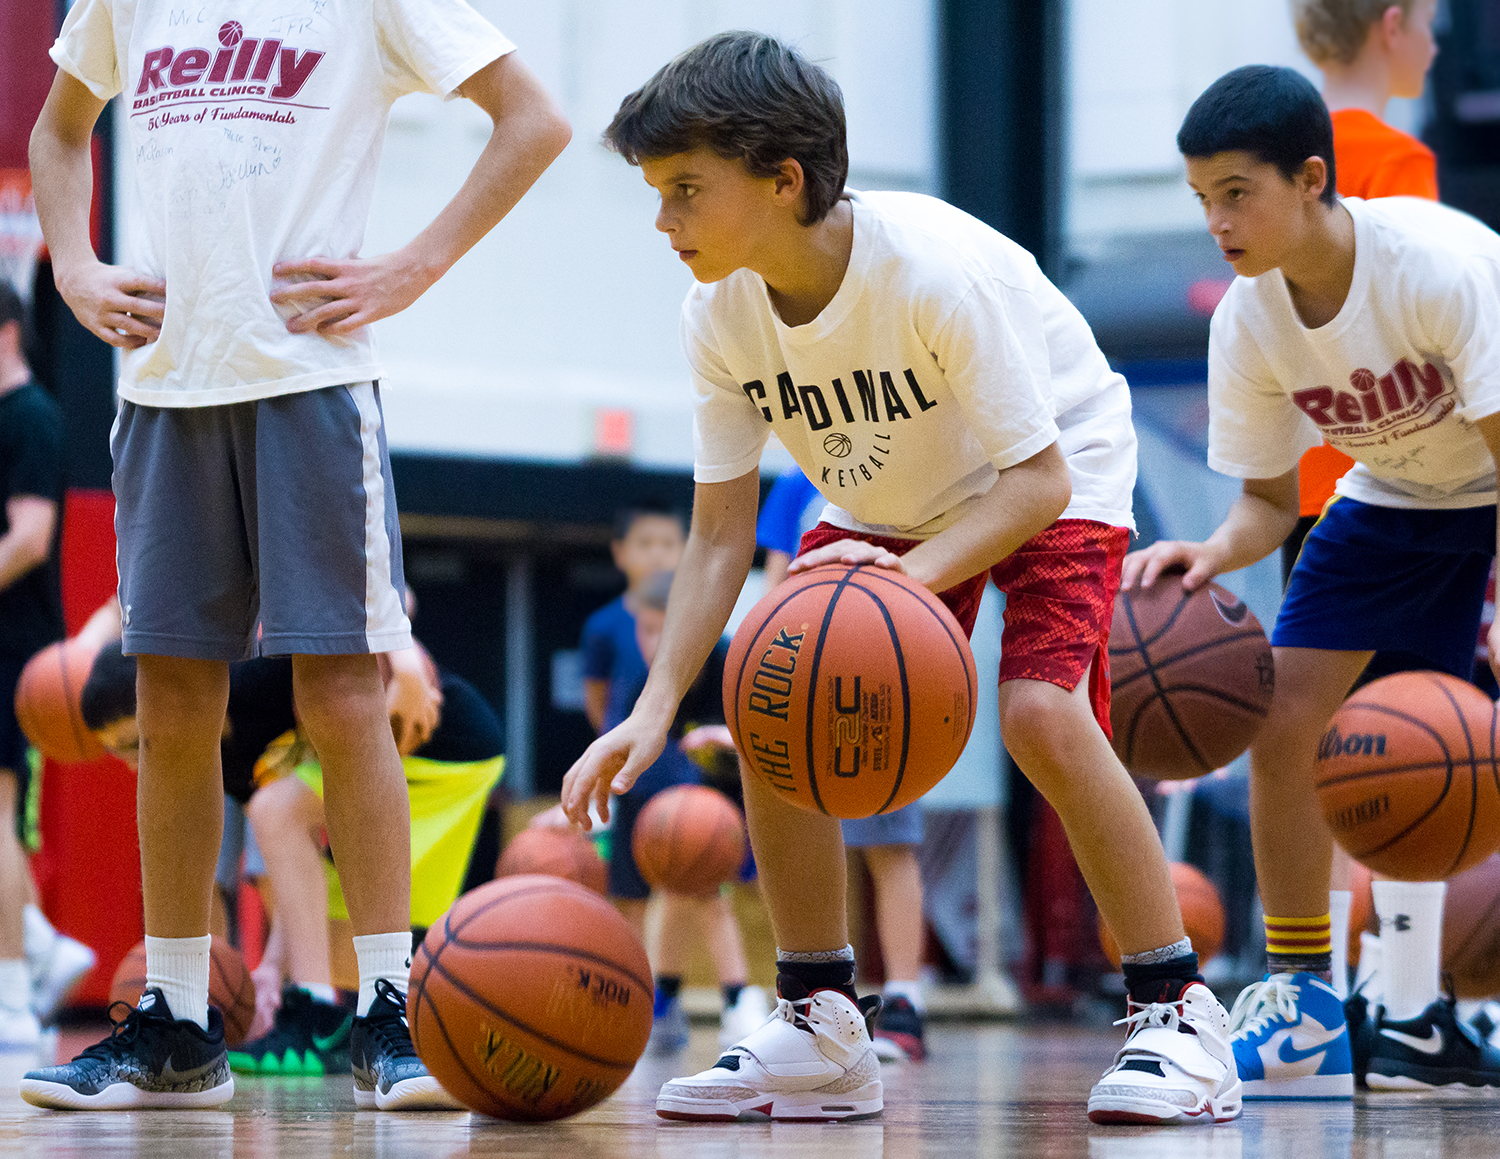 Powell_Reilly Basketball Clinic-36